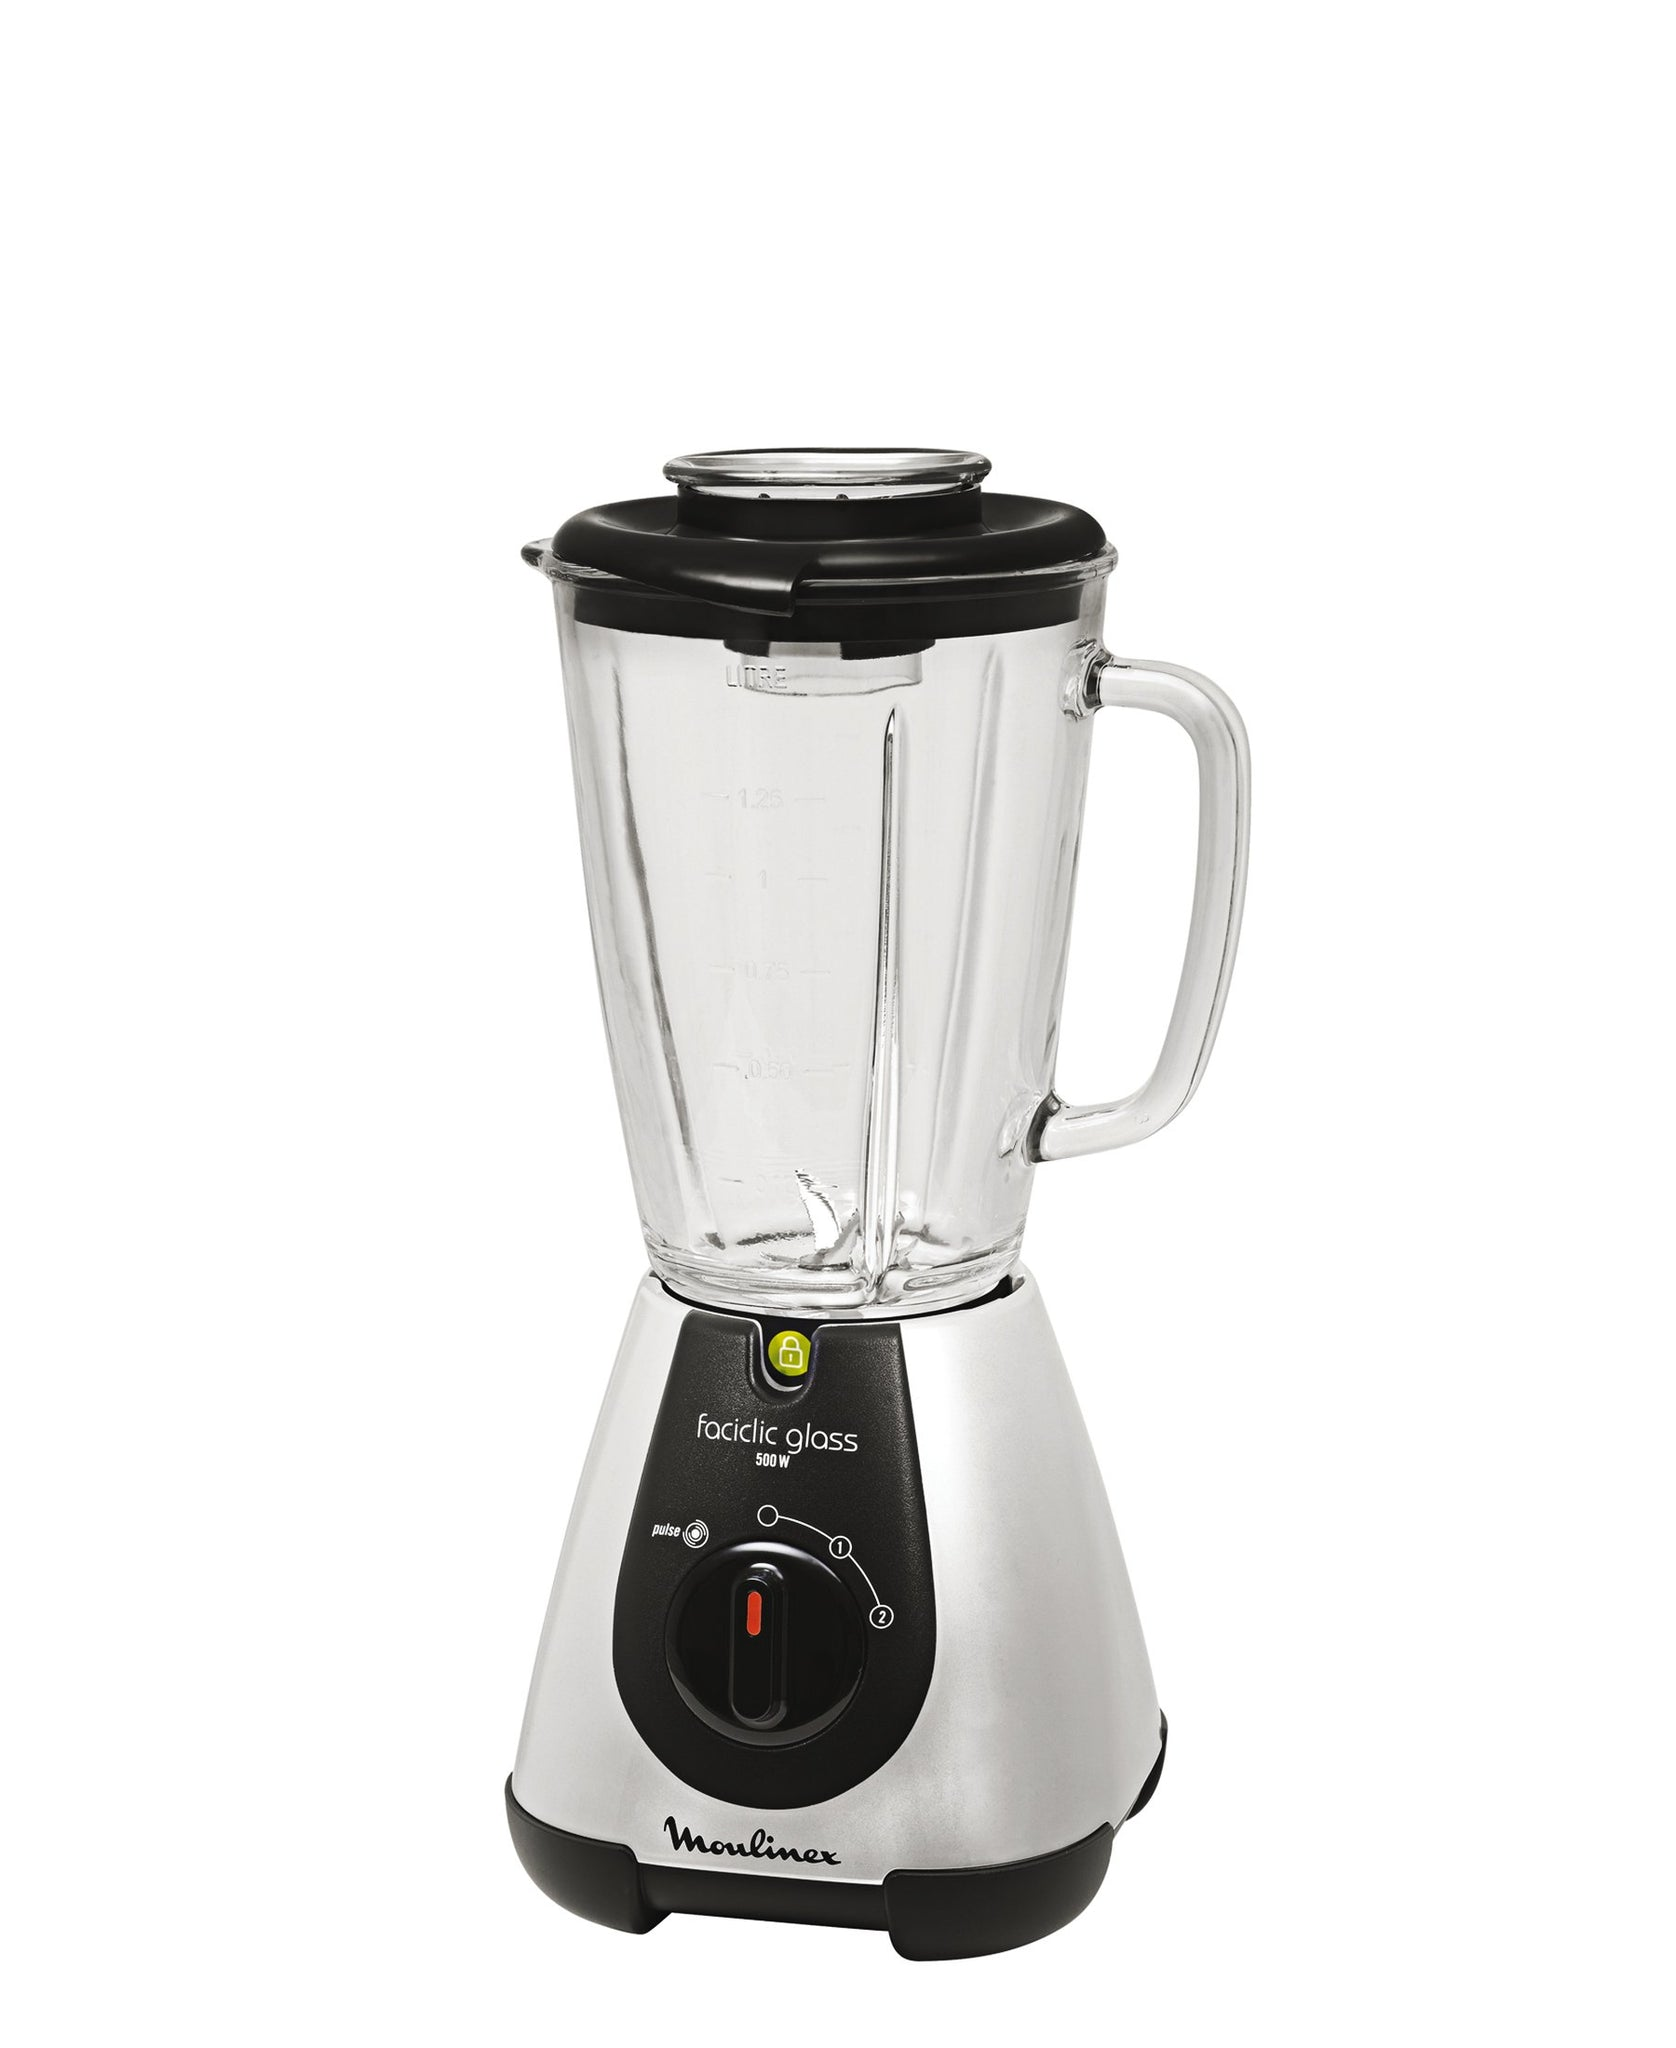 Moulinex Faciclic Blender With Glass Jug - Black